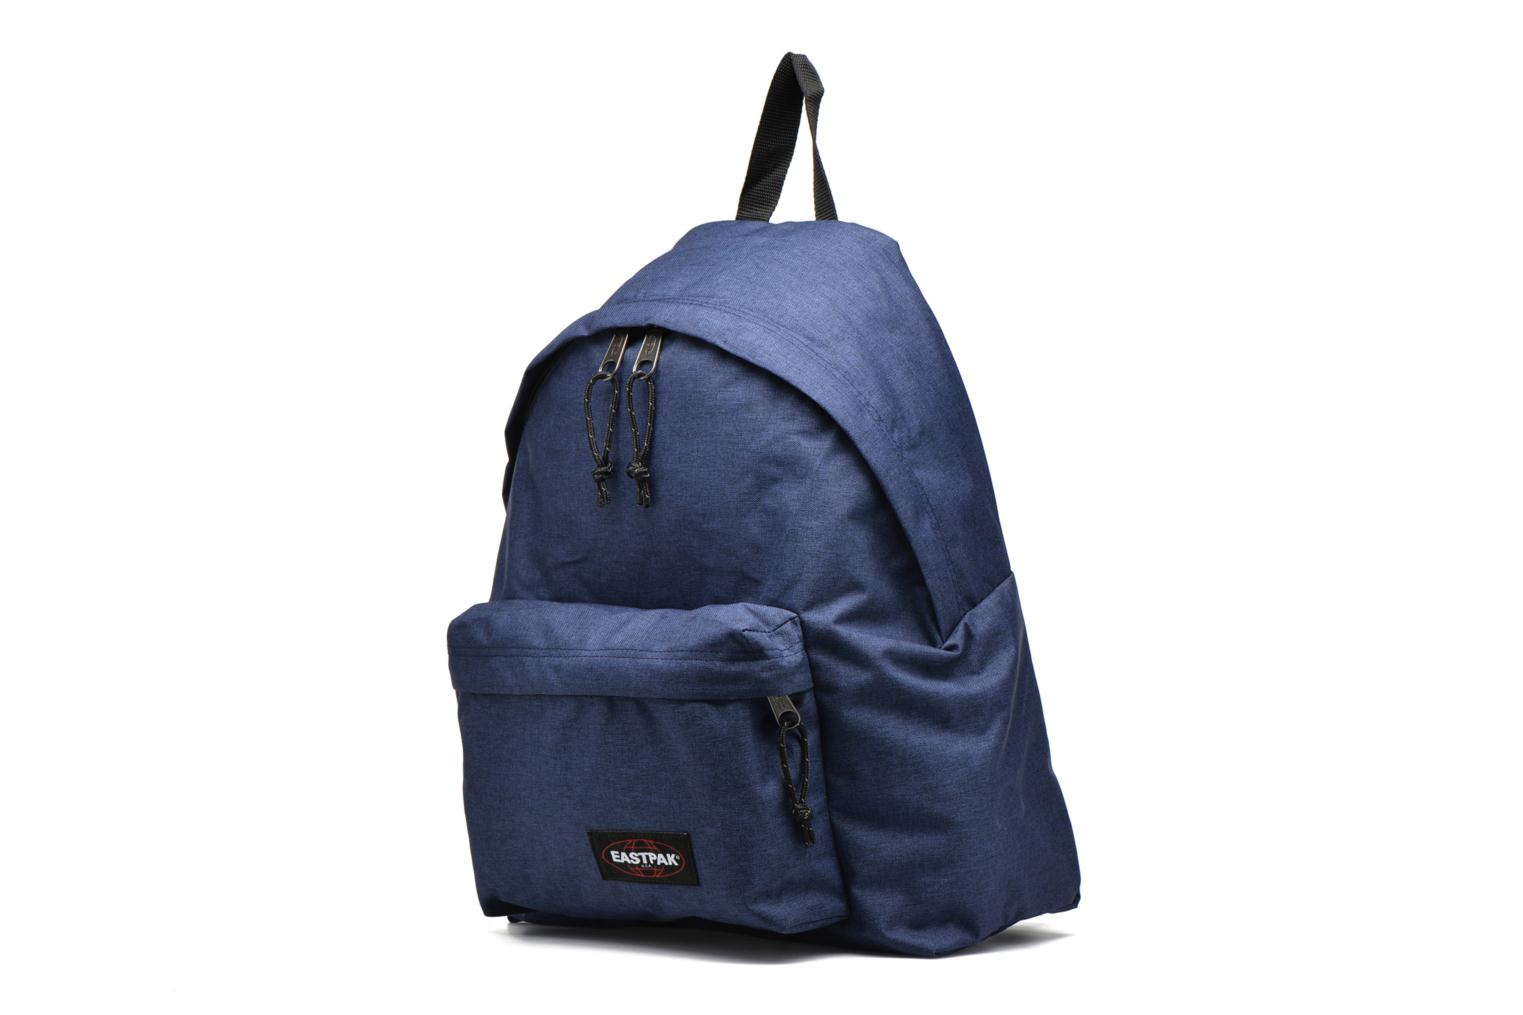 PADDED PACK'R Sac à dos toile Crafty blue